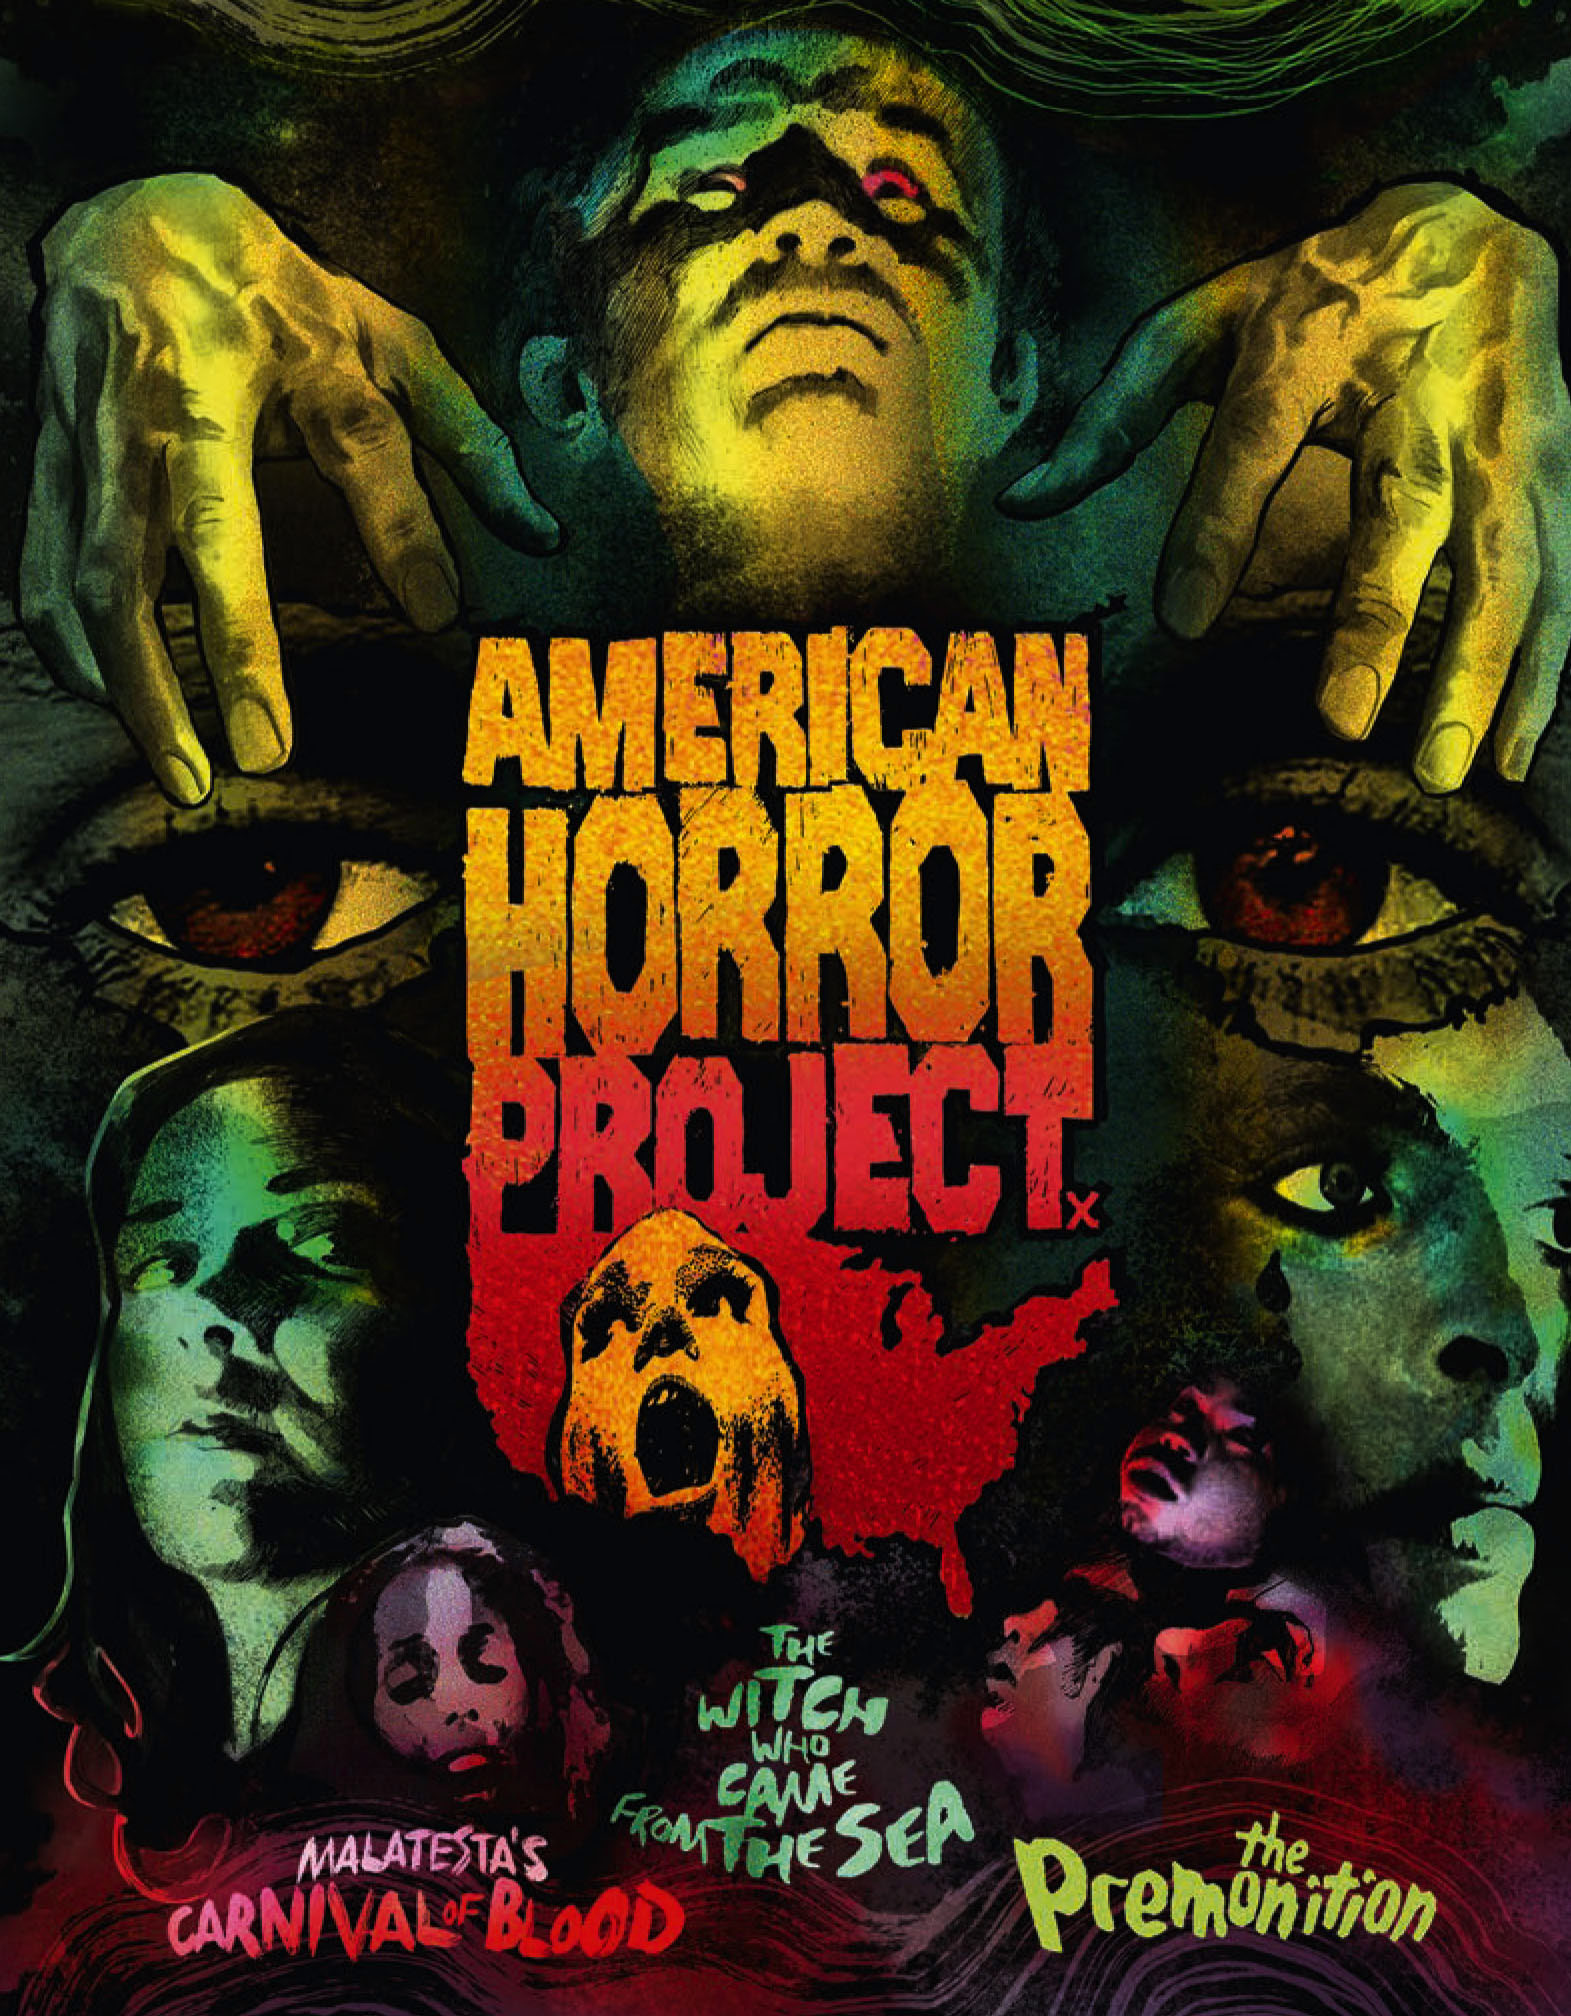 american-horror-project-vol-1-disc-cover-artwork-images